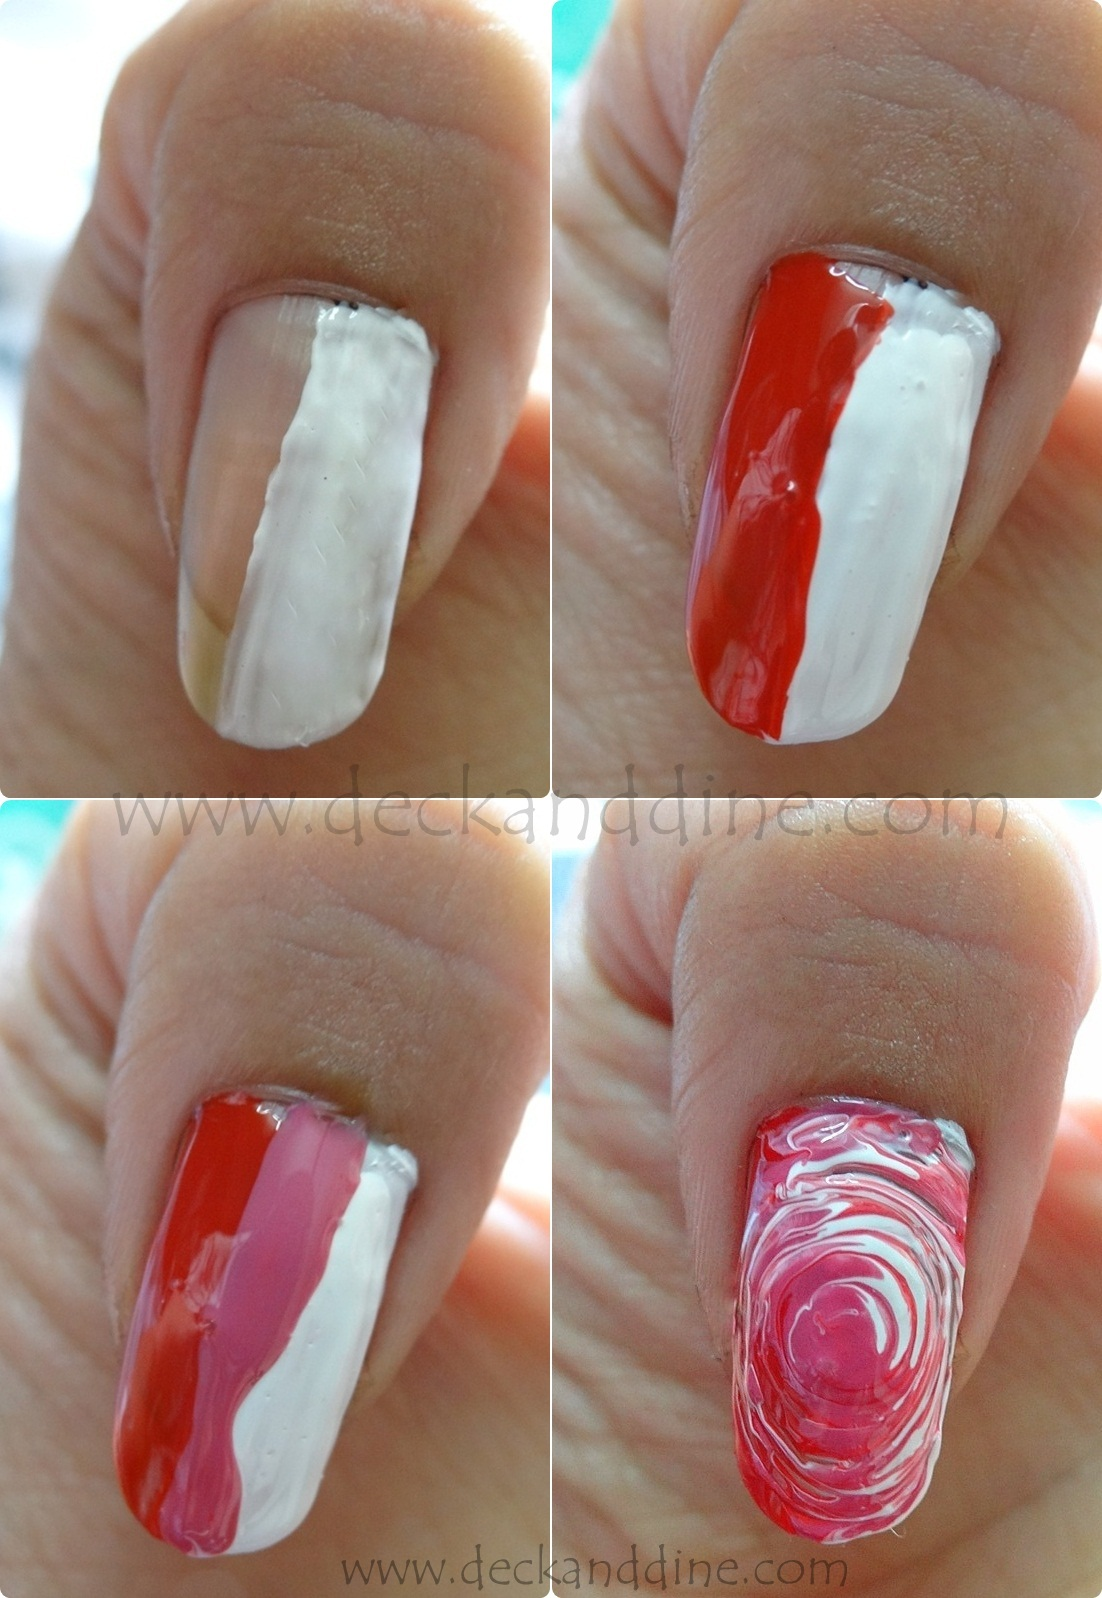 Swirl nail art for beginners step by step tutorial deck and dine swirl nail art for beginners step by step tutorial baditri Gallery